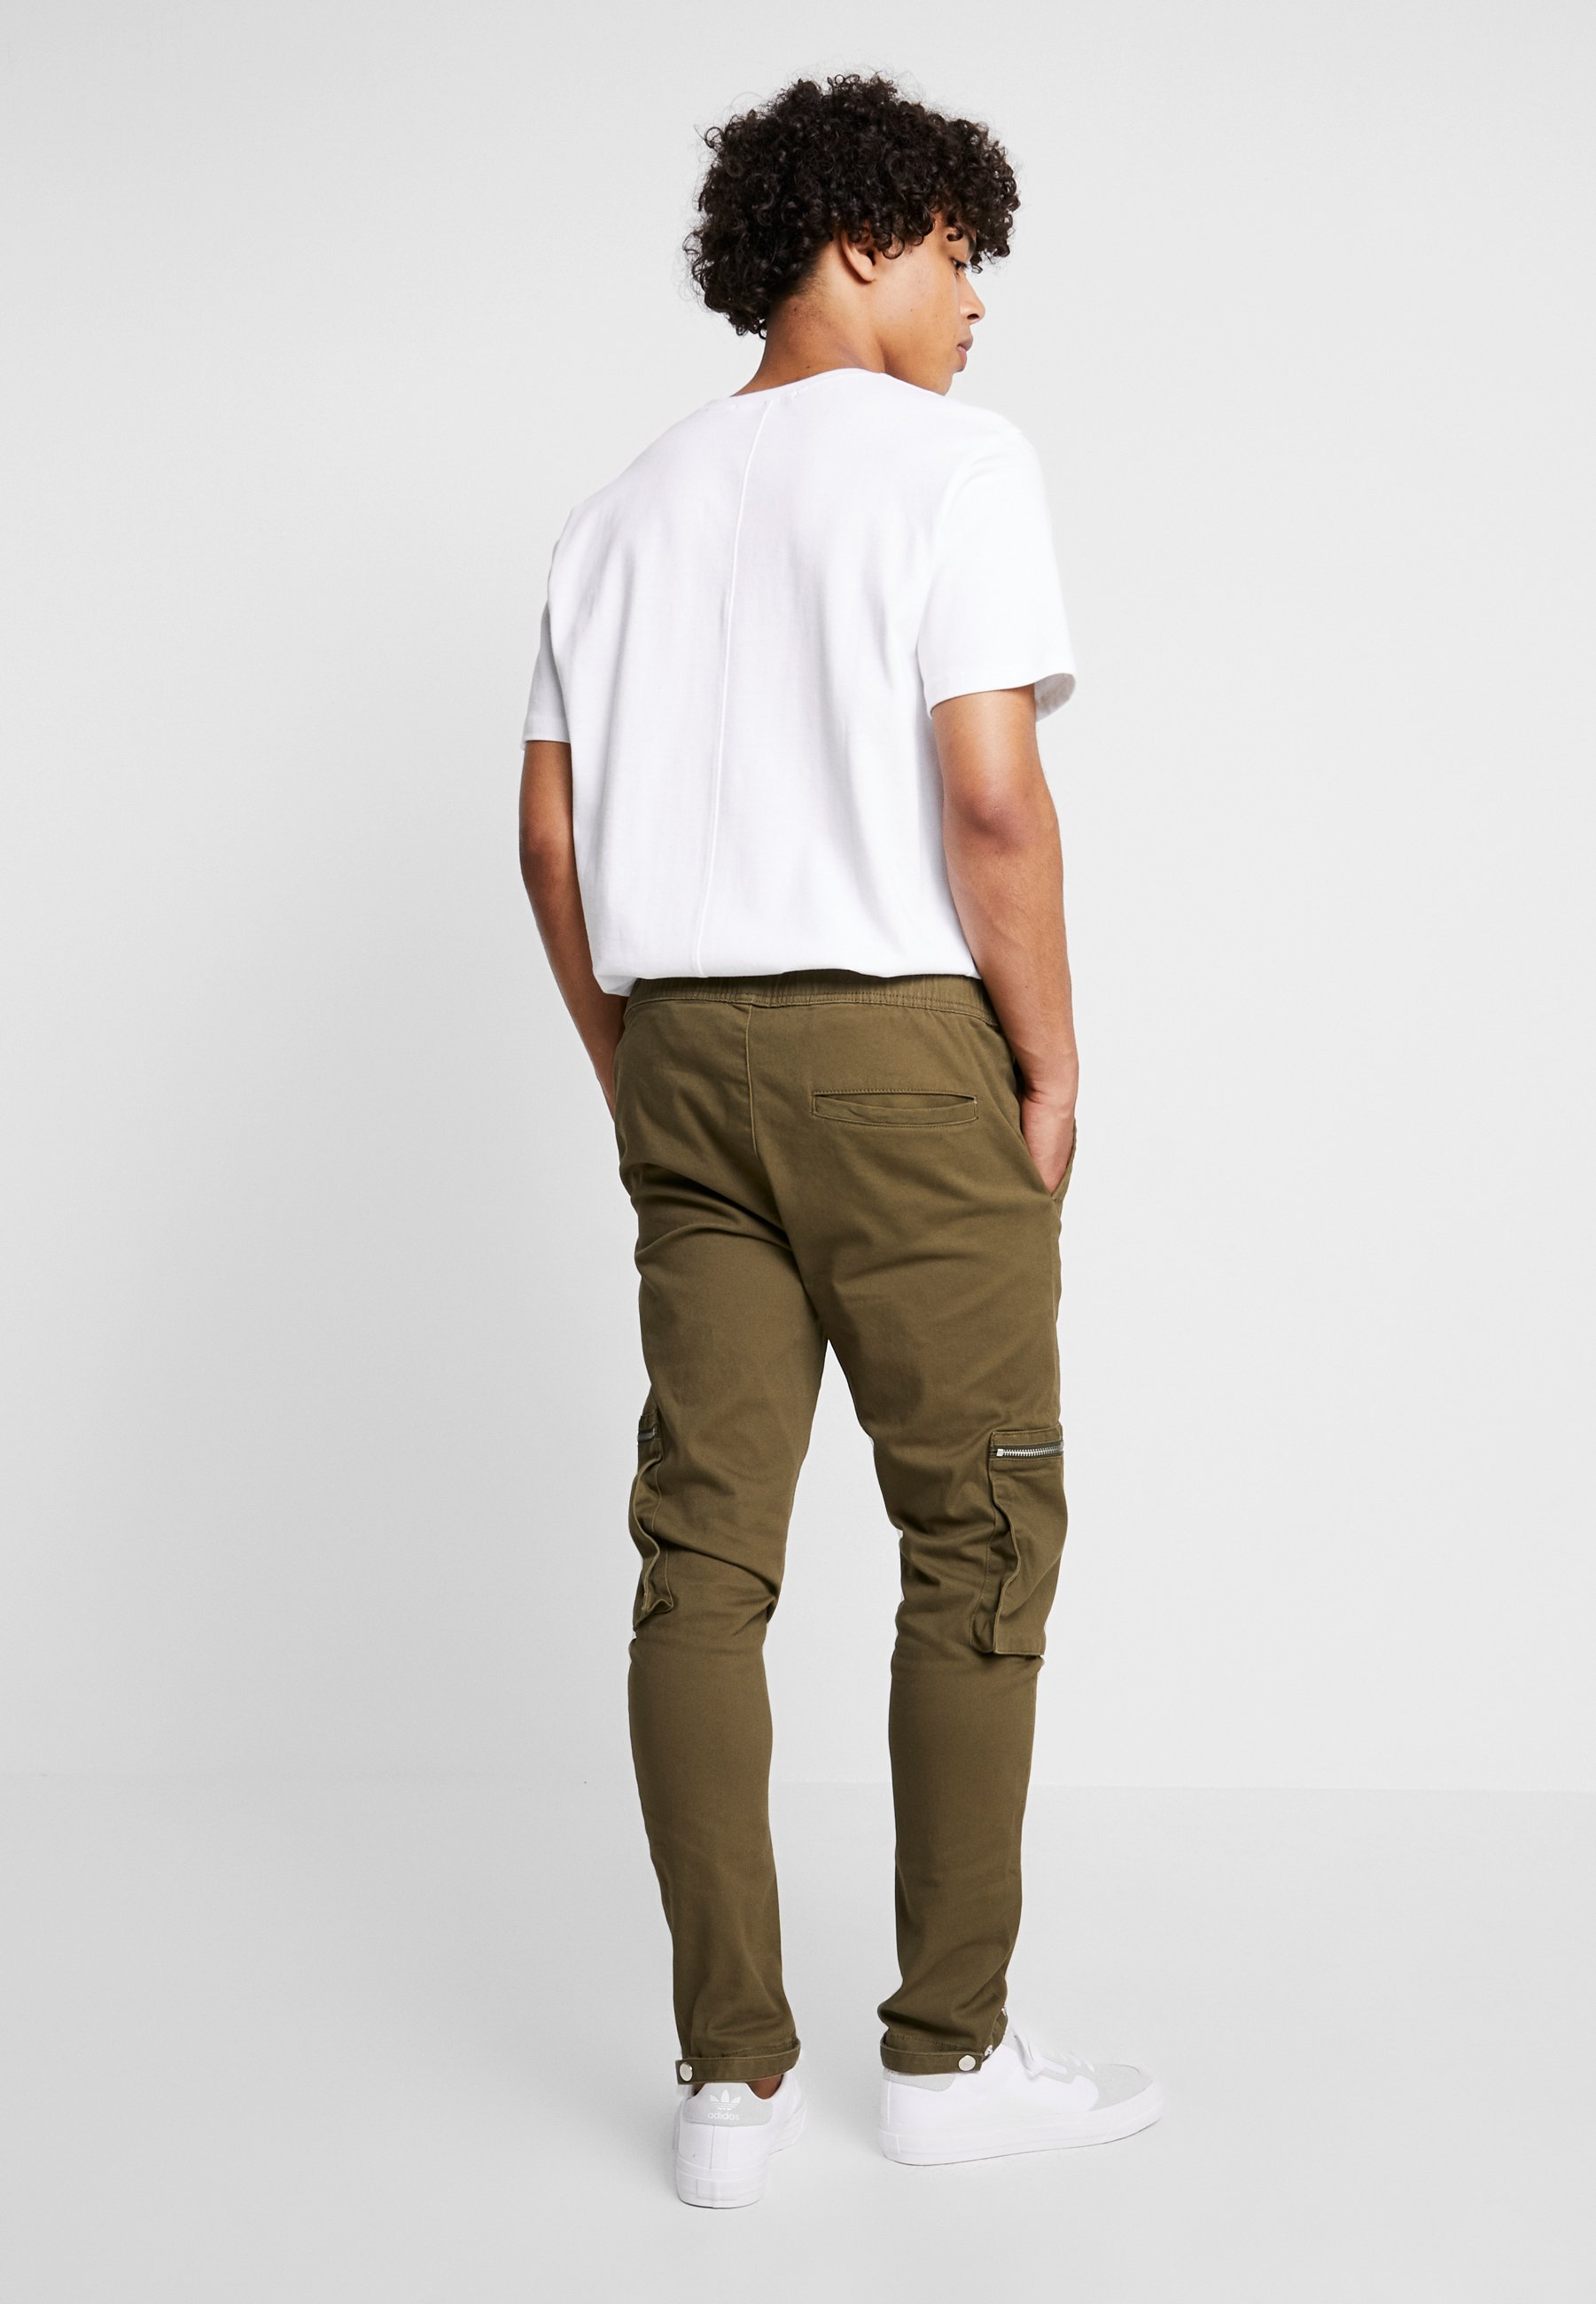 Night CargoKhaki CargoKhaki Addict CargoKhaki Pantalon Night Addict Pantalon Night Addict Pantalon Nnwvm8O0y